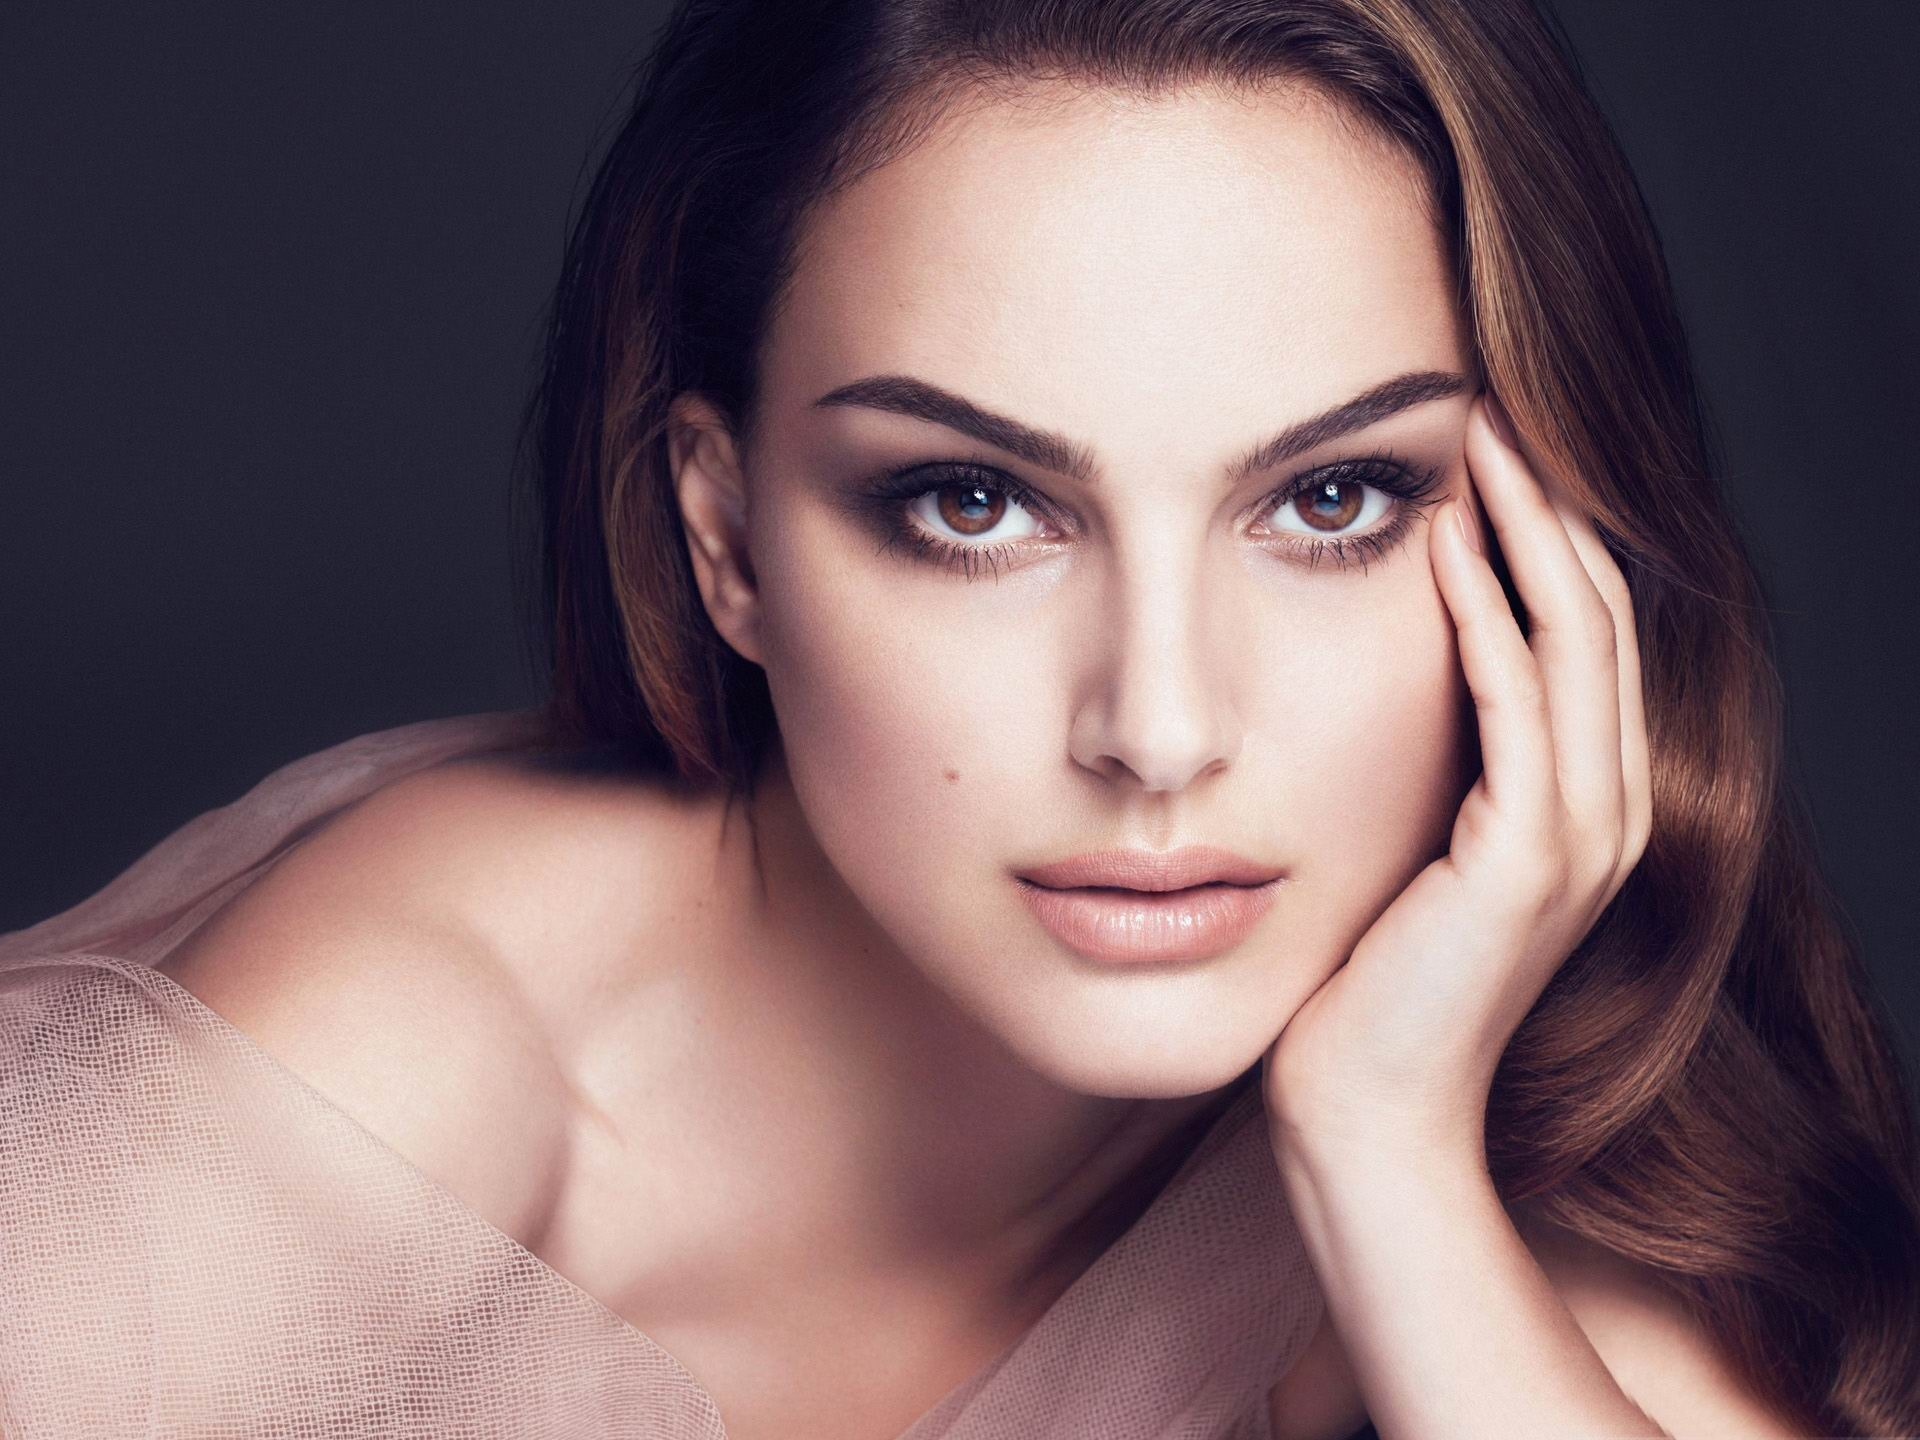 Top 10 Best Hollywood Actresses For 2013 Natalie Portman